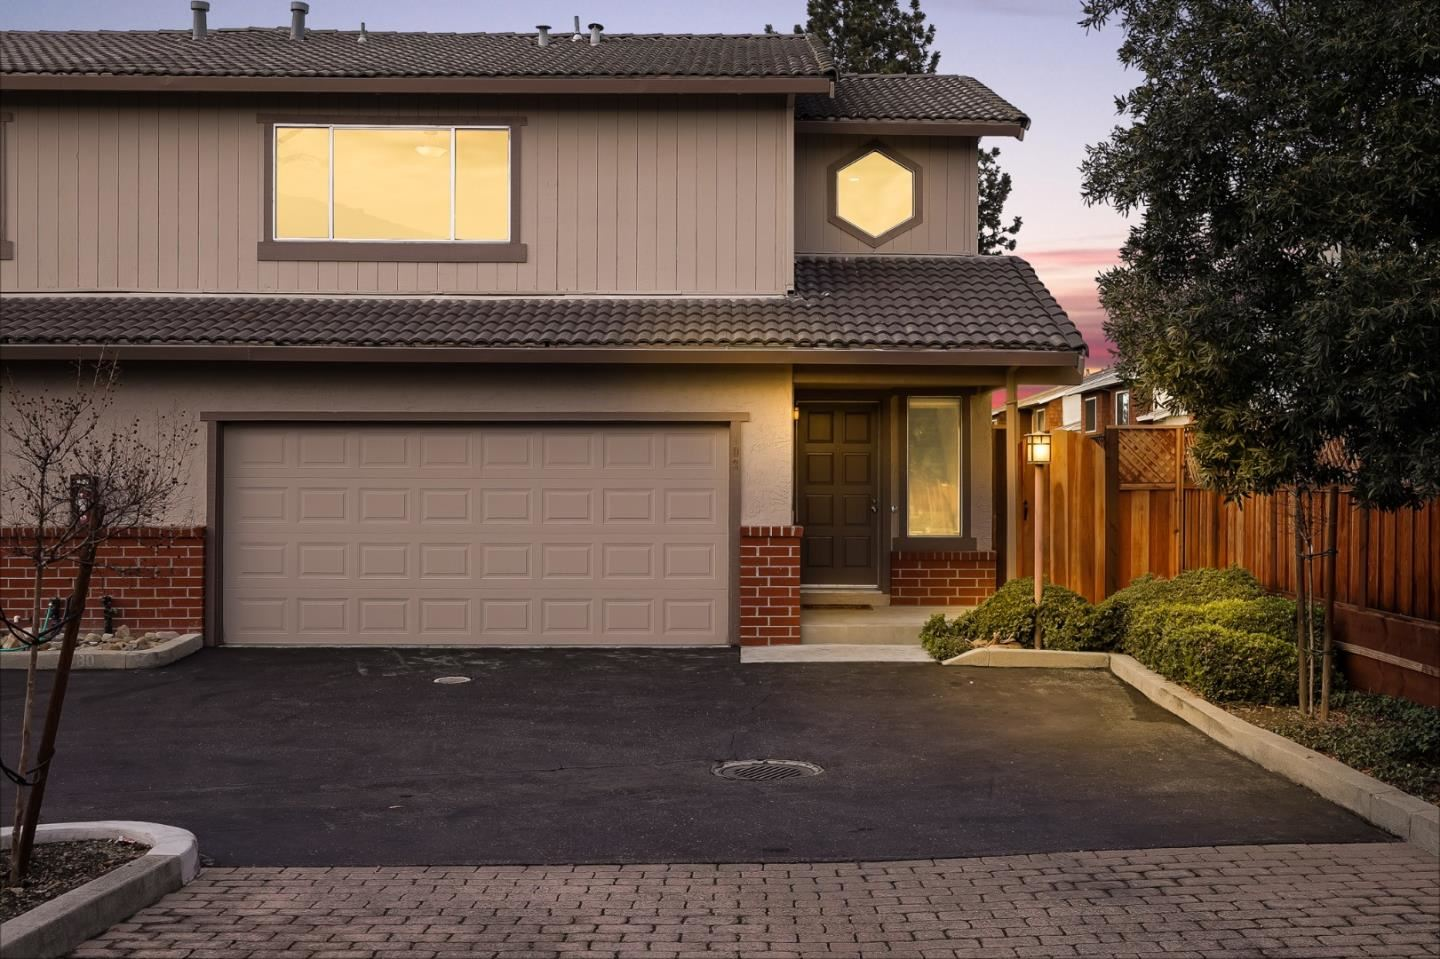 Photo for 103 Shelley AVE, CAMPBELL, CA 95008 (MLS # ML81823494)